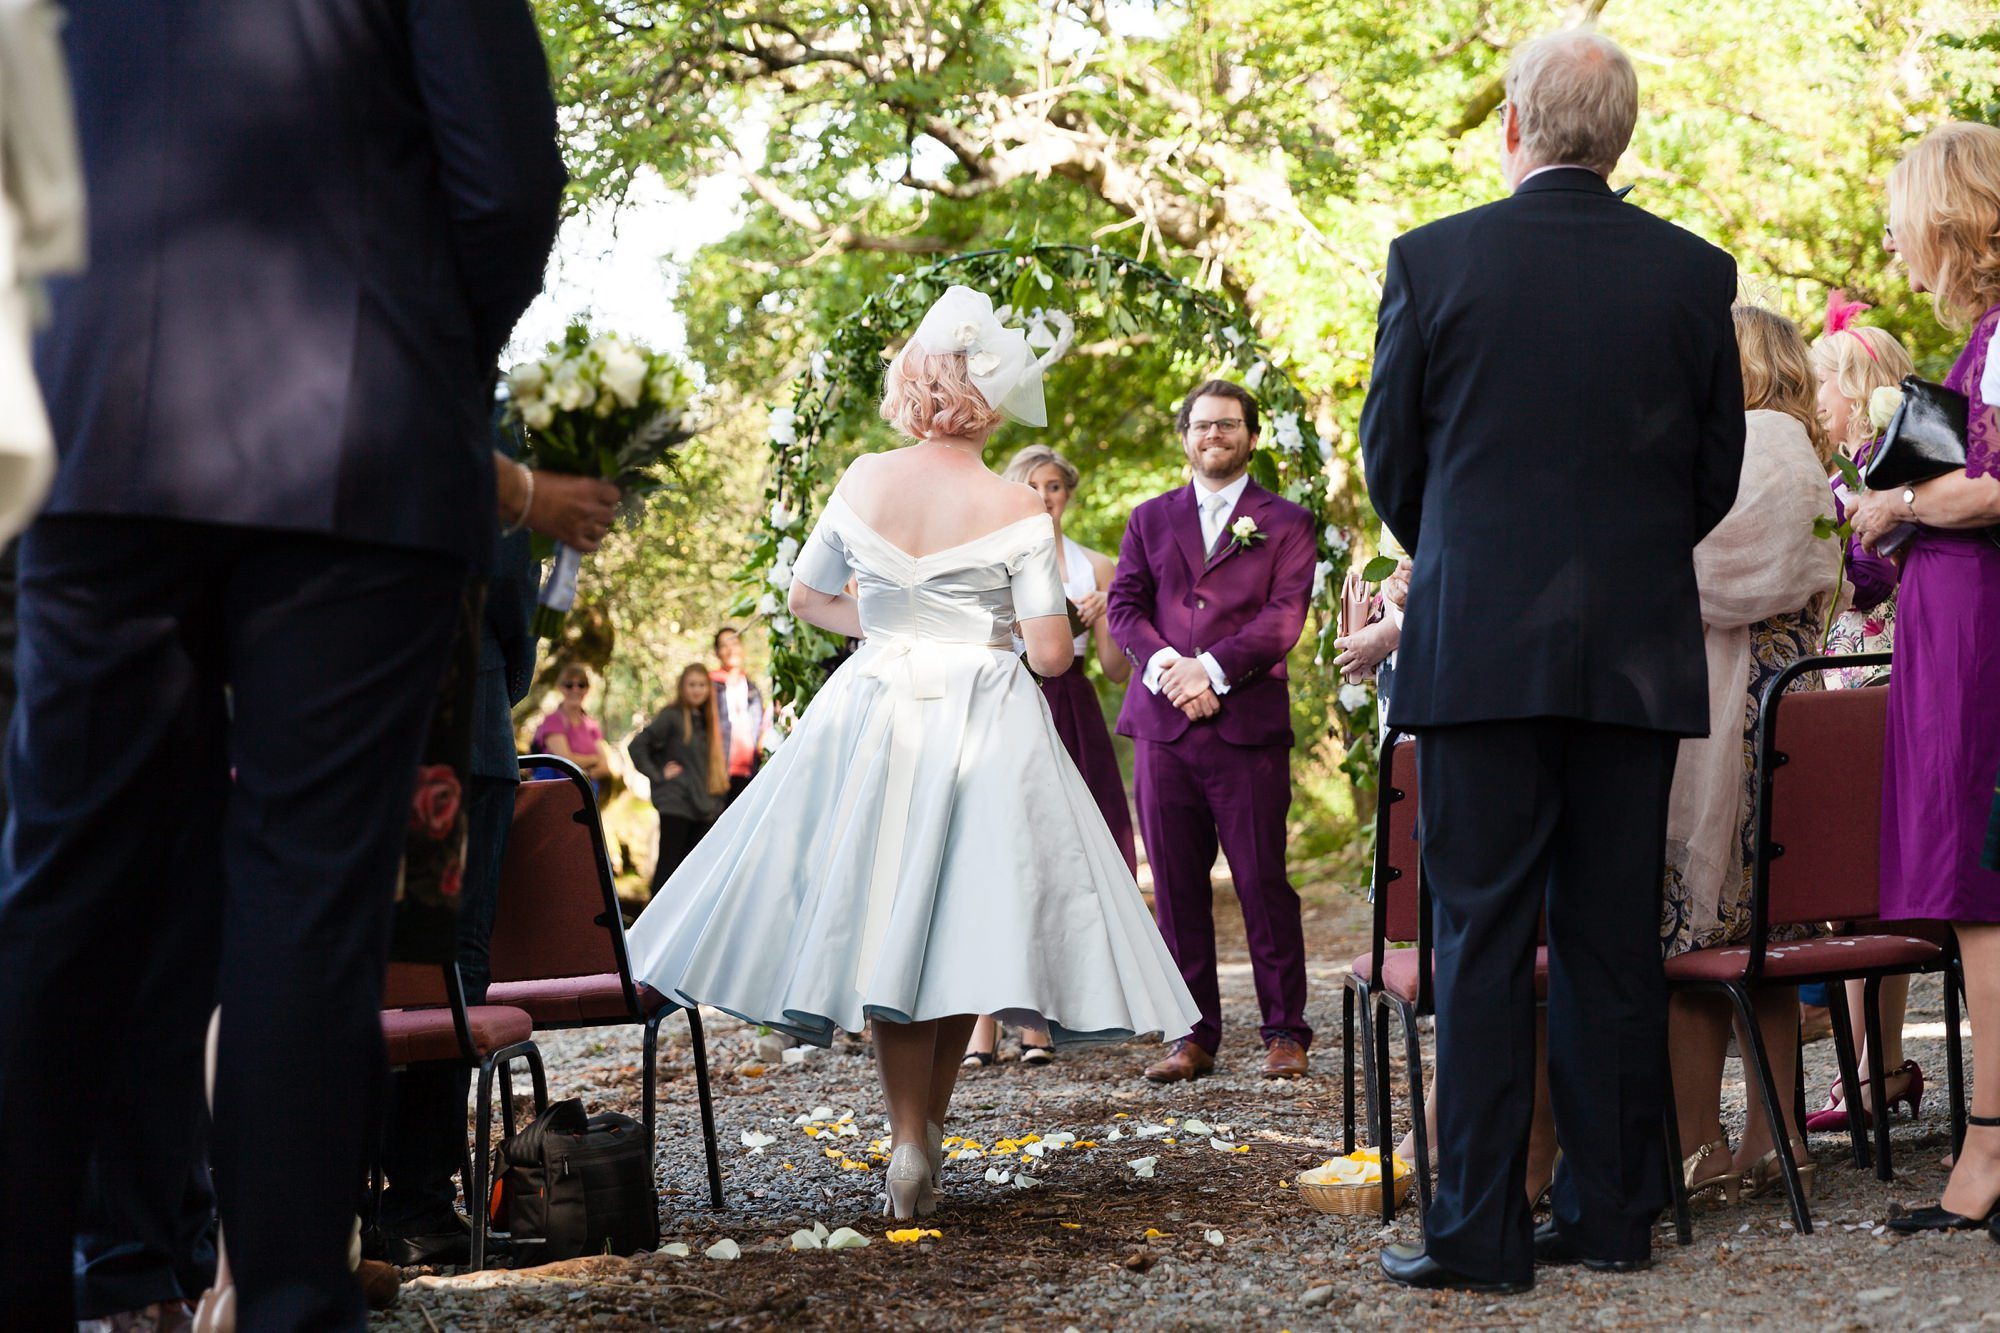 Groom watches as bride walks up aisle Derwentwater Independent Hostel Wedding